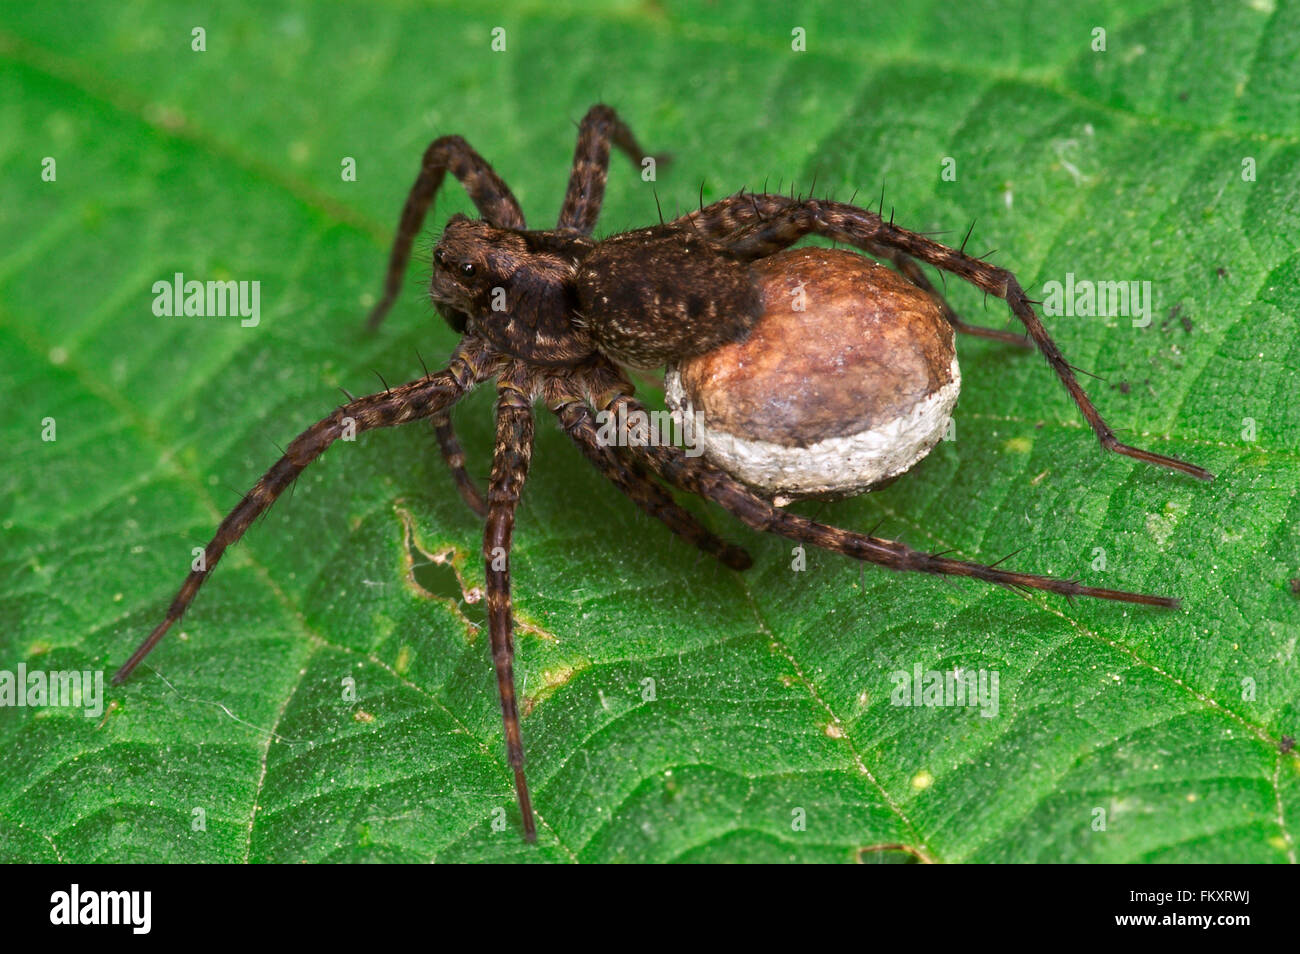 Wolf spider / spotted wolf spider (Pardosa amentata) female carrying egg sac - Stock Image